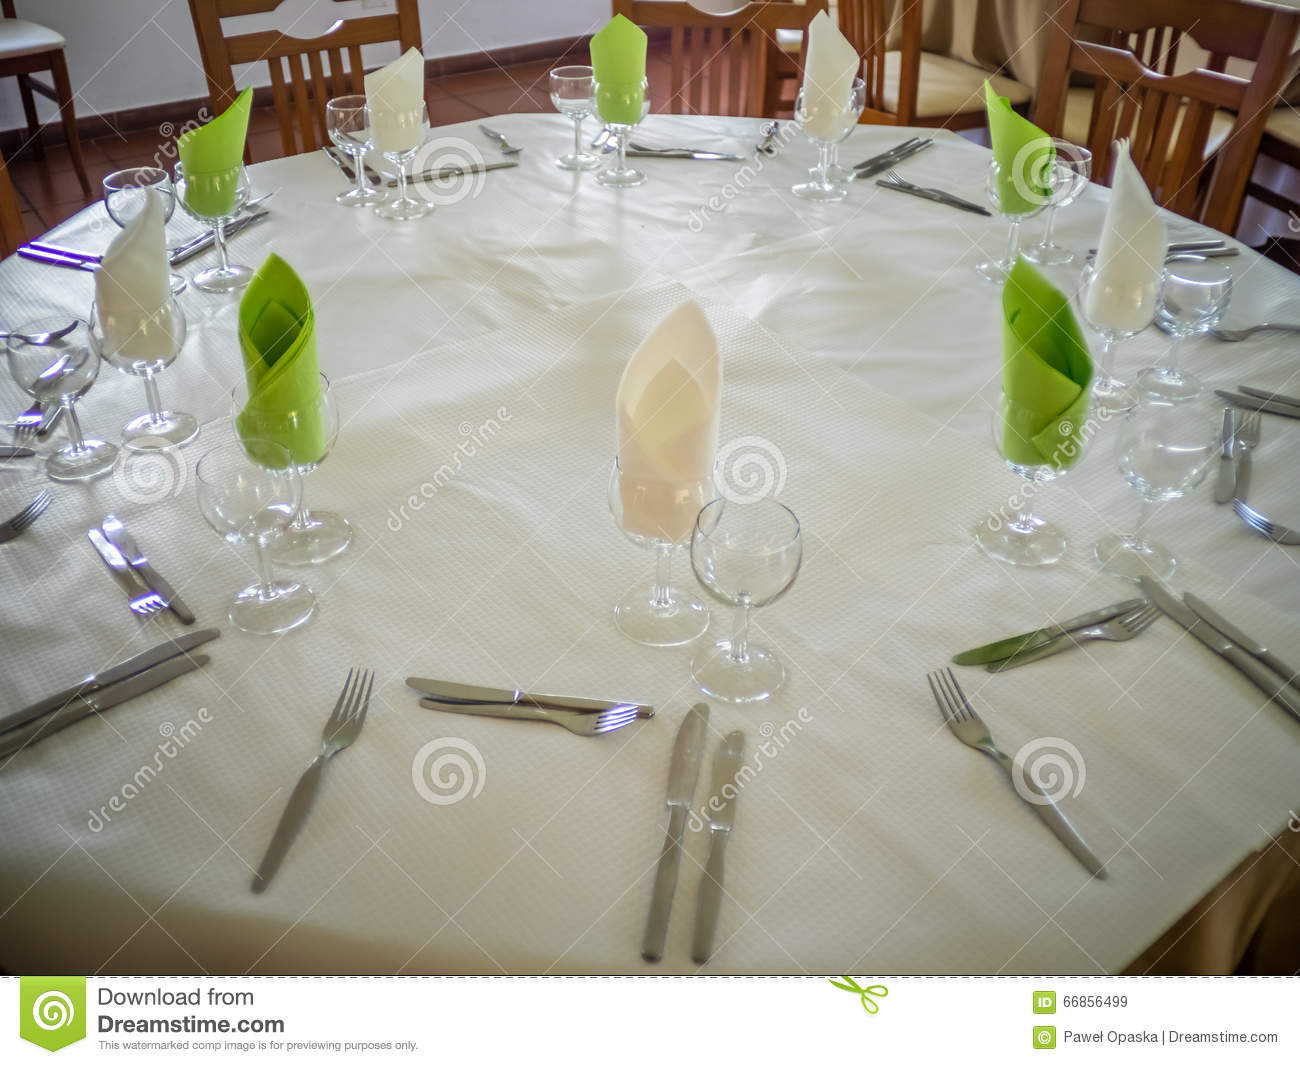 Restaurant table setup - Restaurant Table Setup